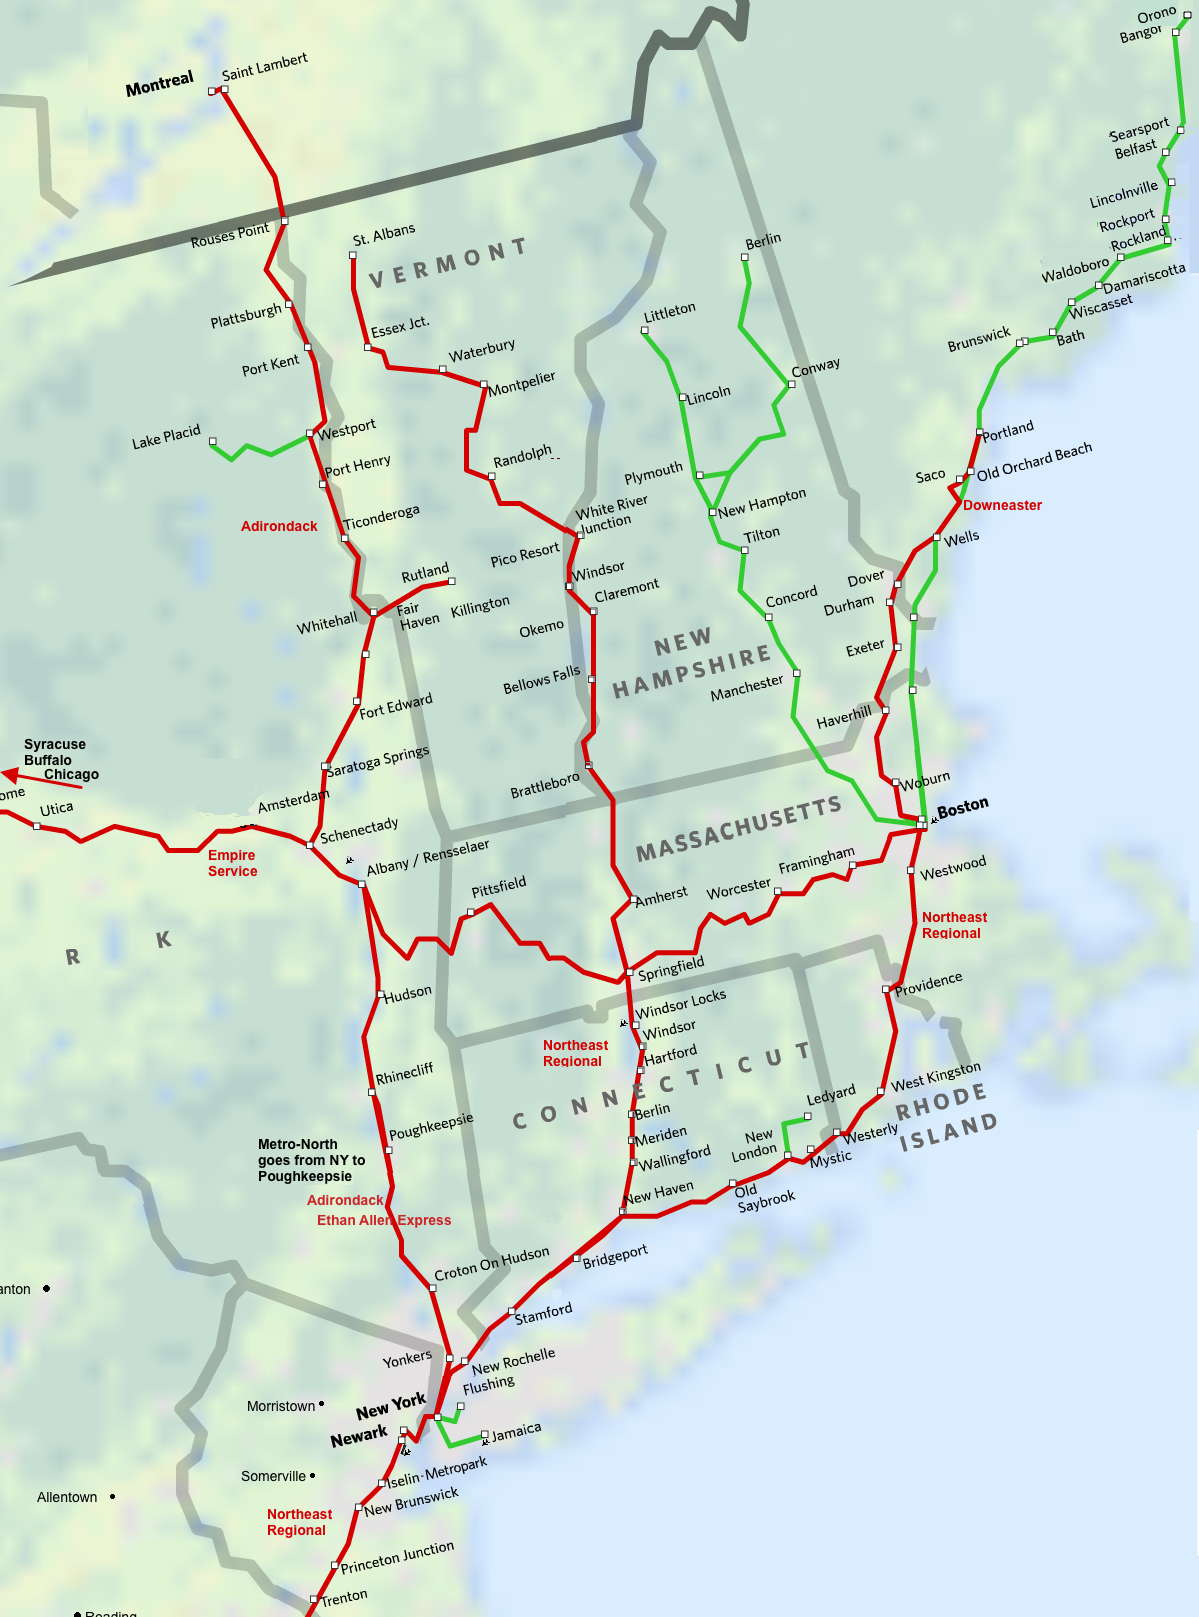 North East New England Amtrak Route Map Super Easy Way To Get To - Amtrak map usa